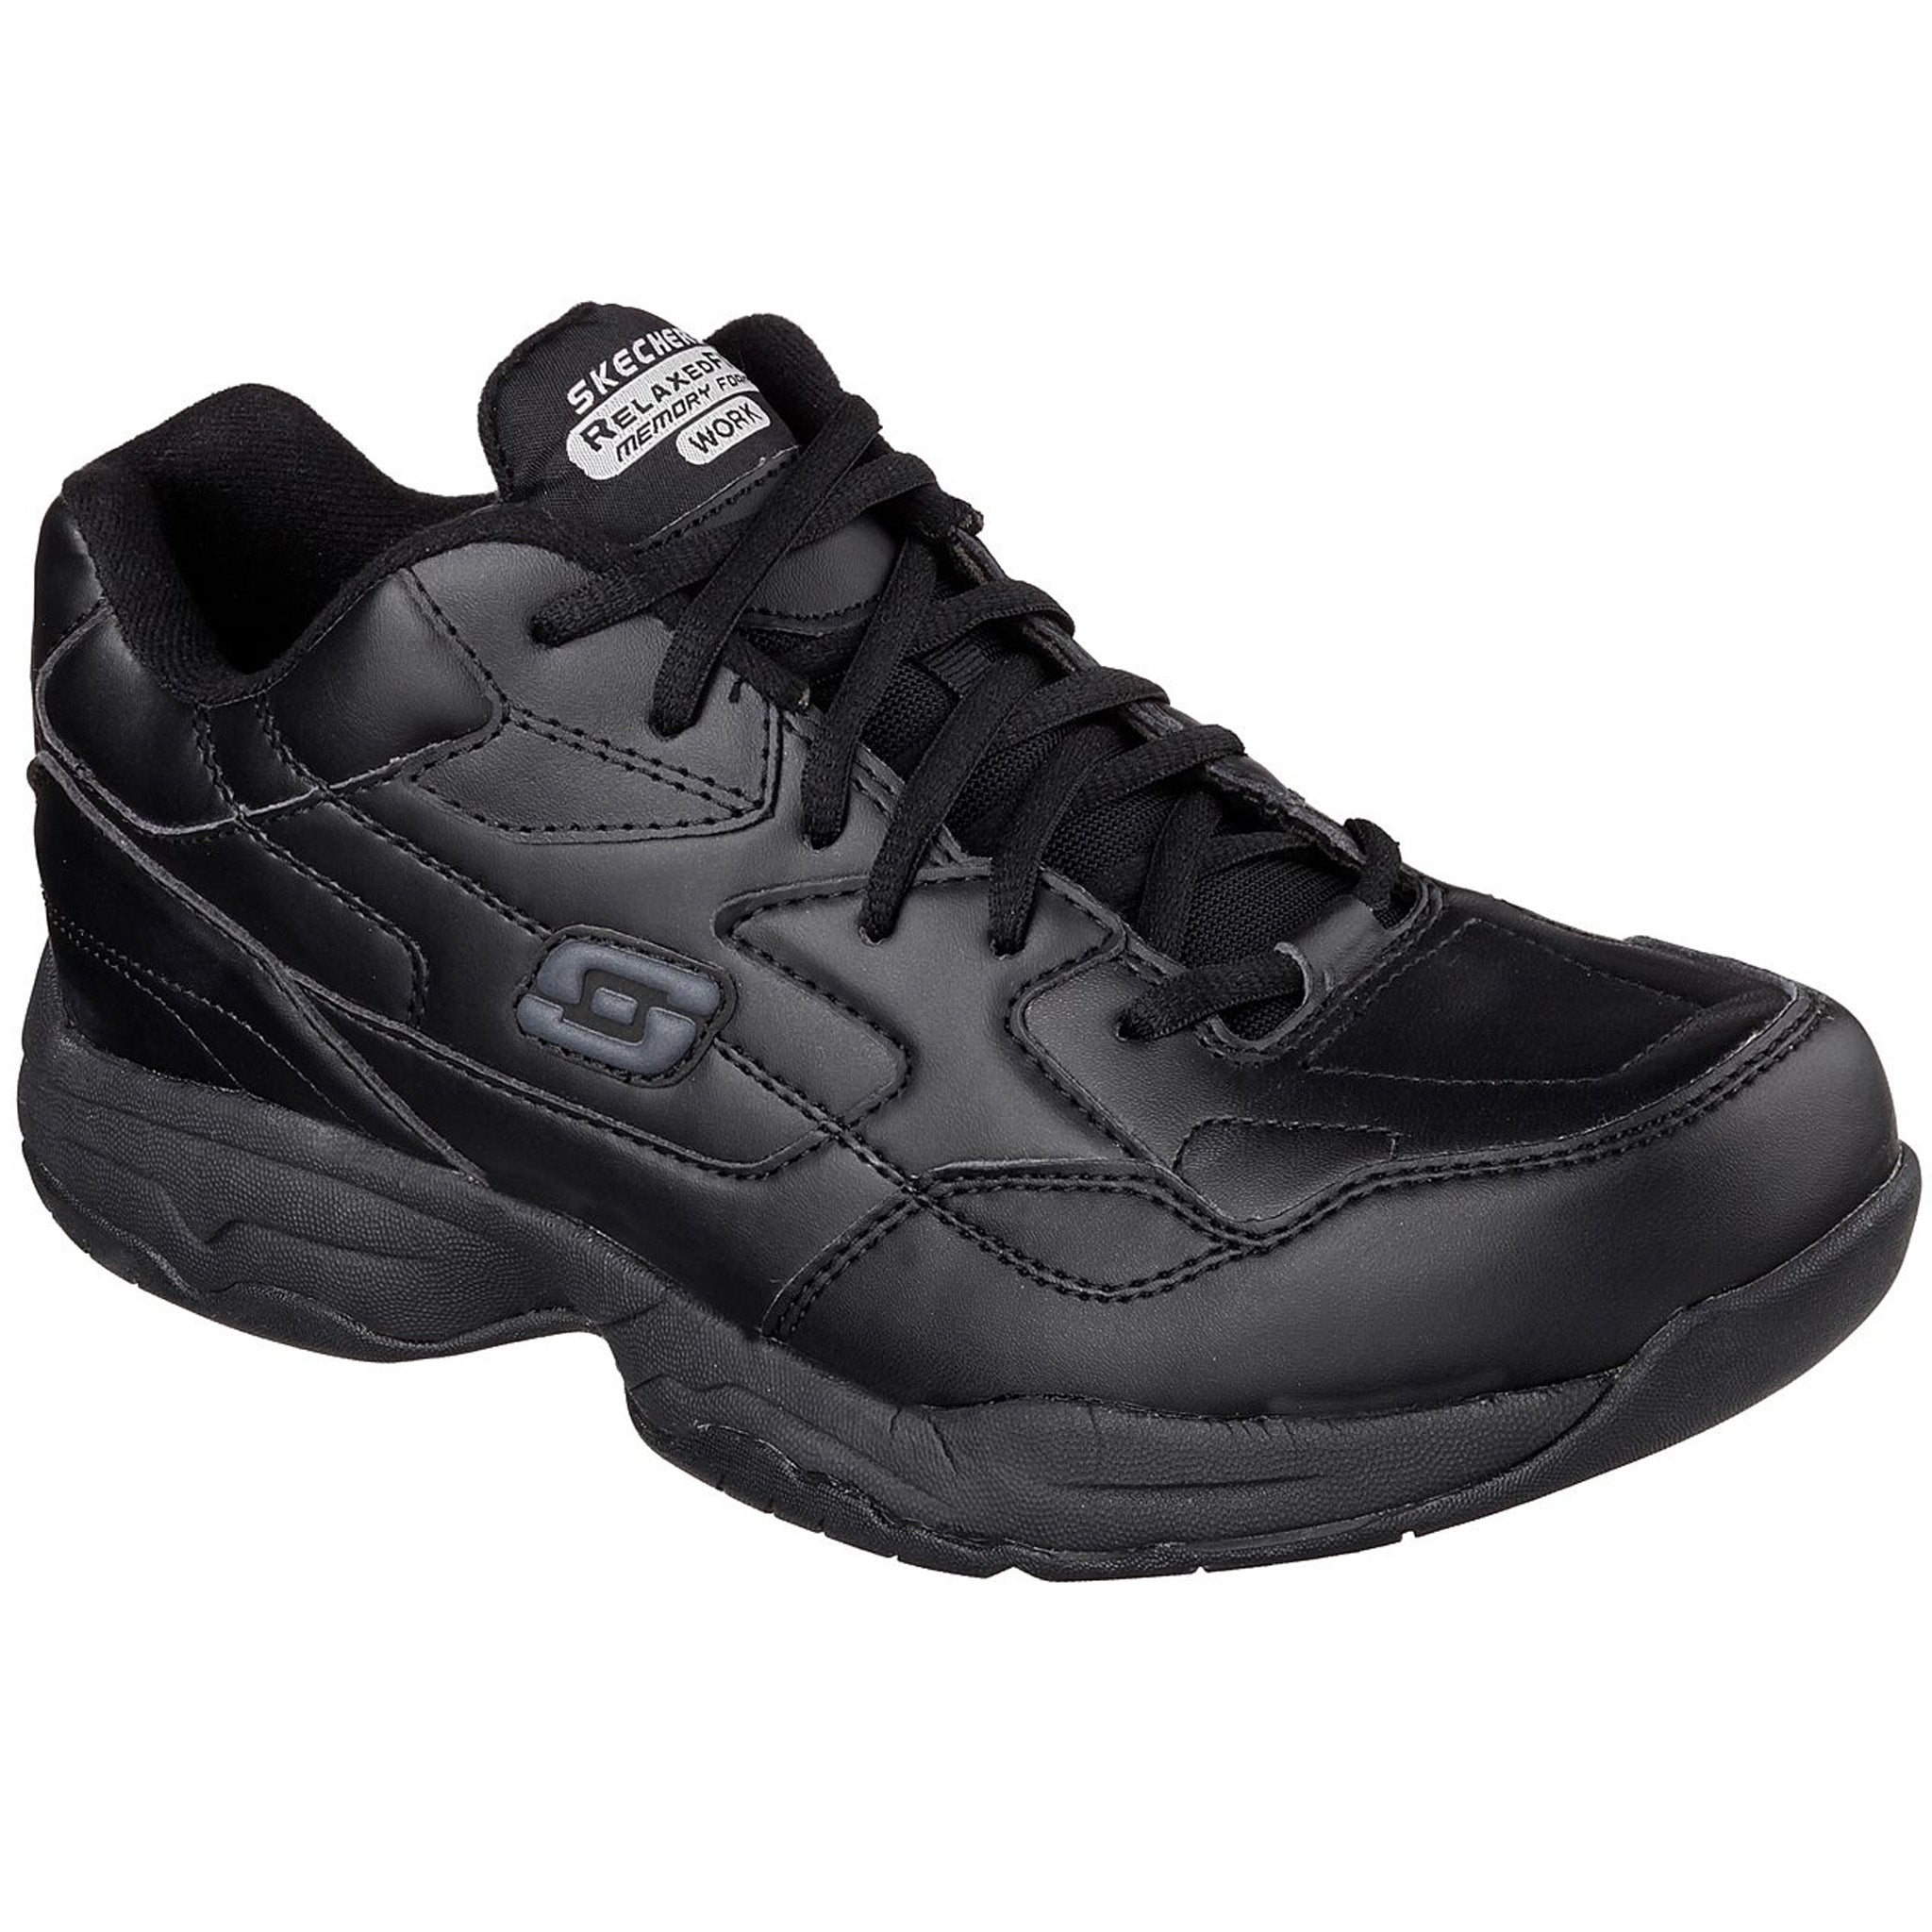 skechers slip resistant memory foam shoes